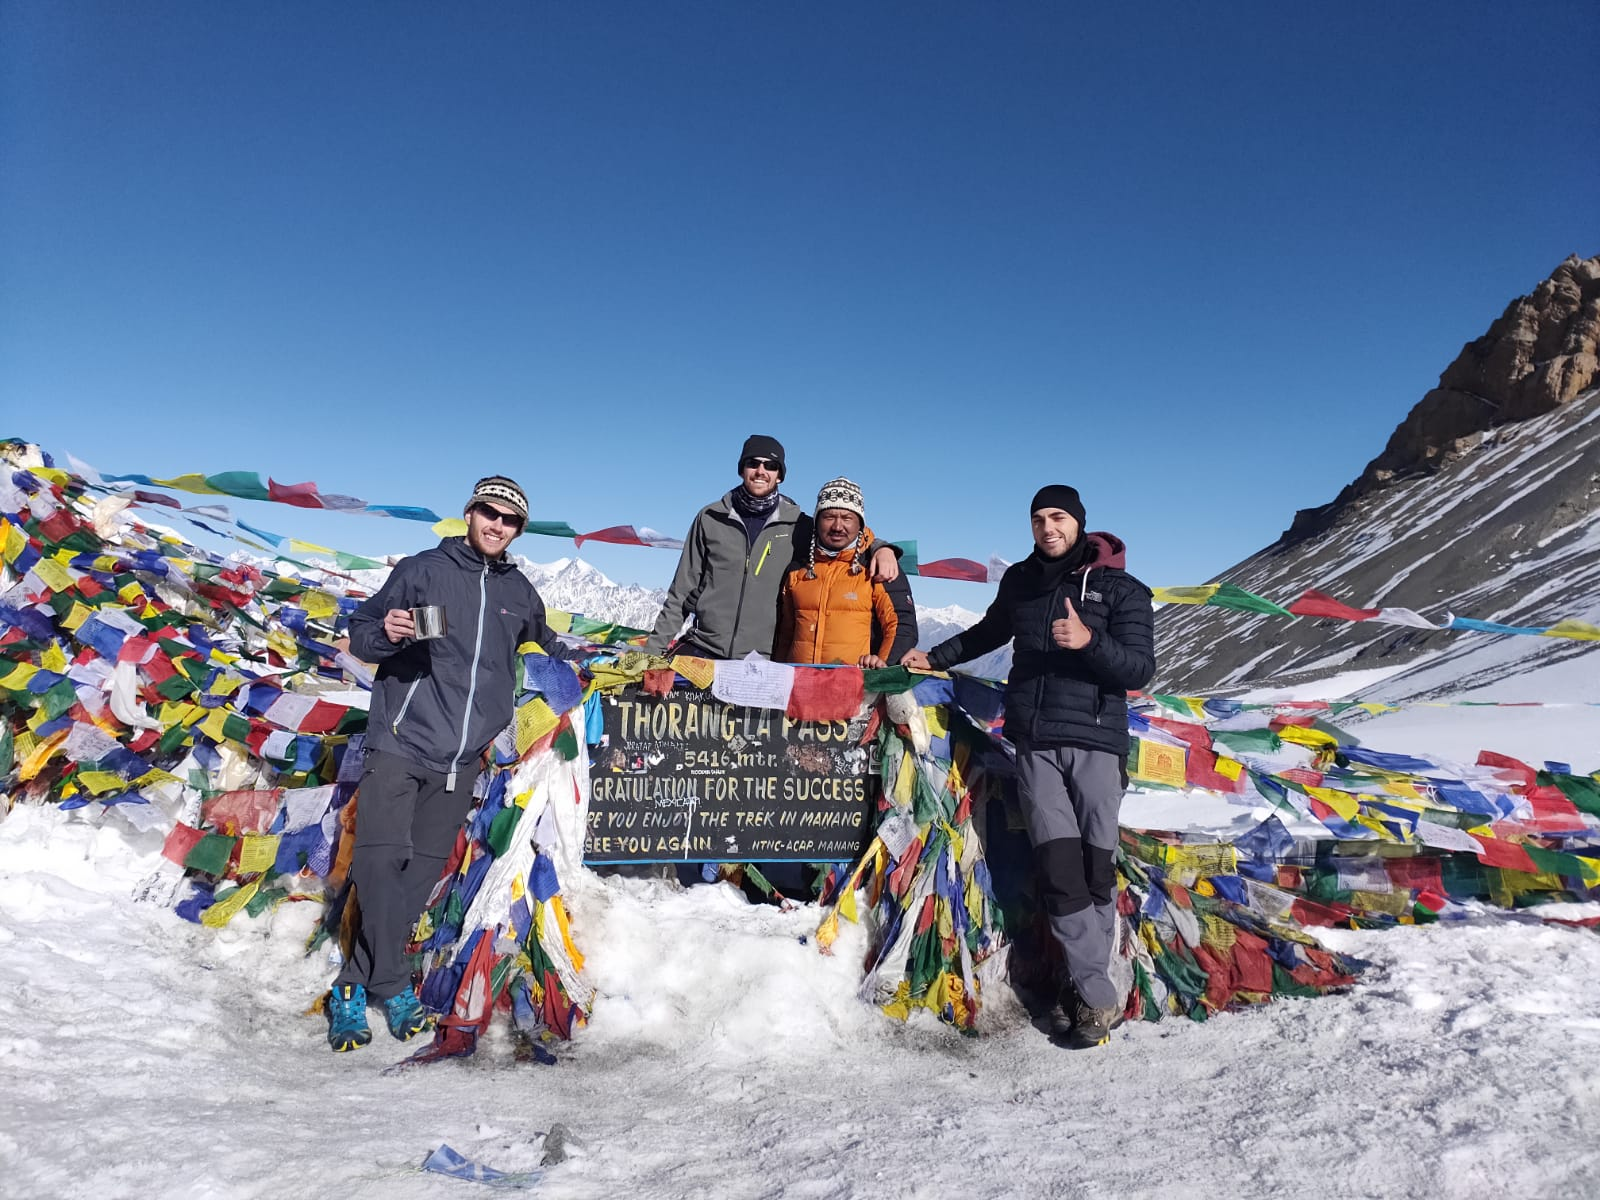 Four hikers posing for a photo at Thorong-La Pass sign surrounded by colourful flags